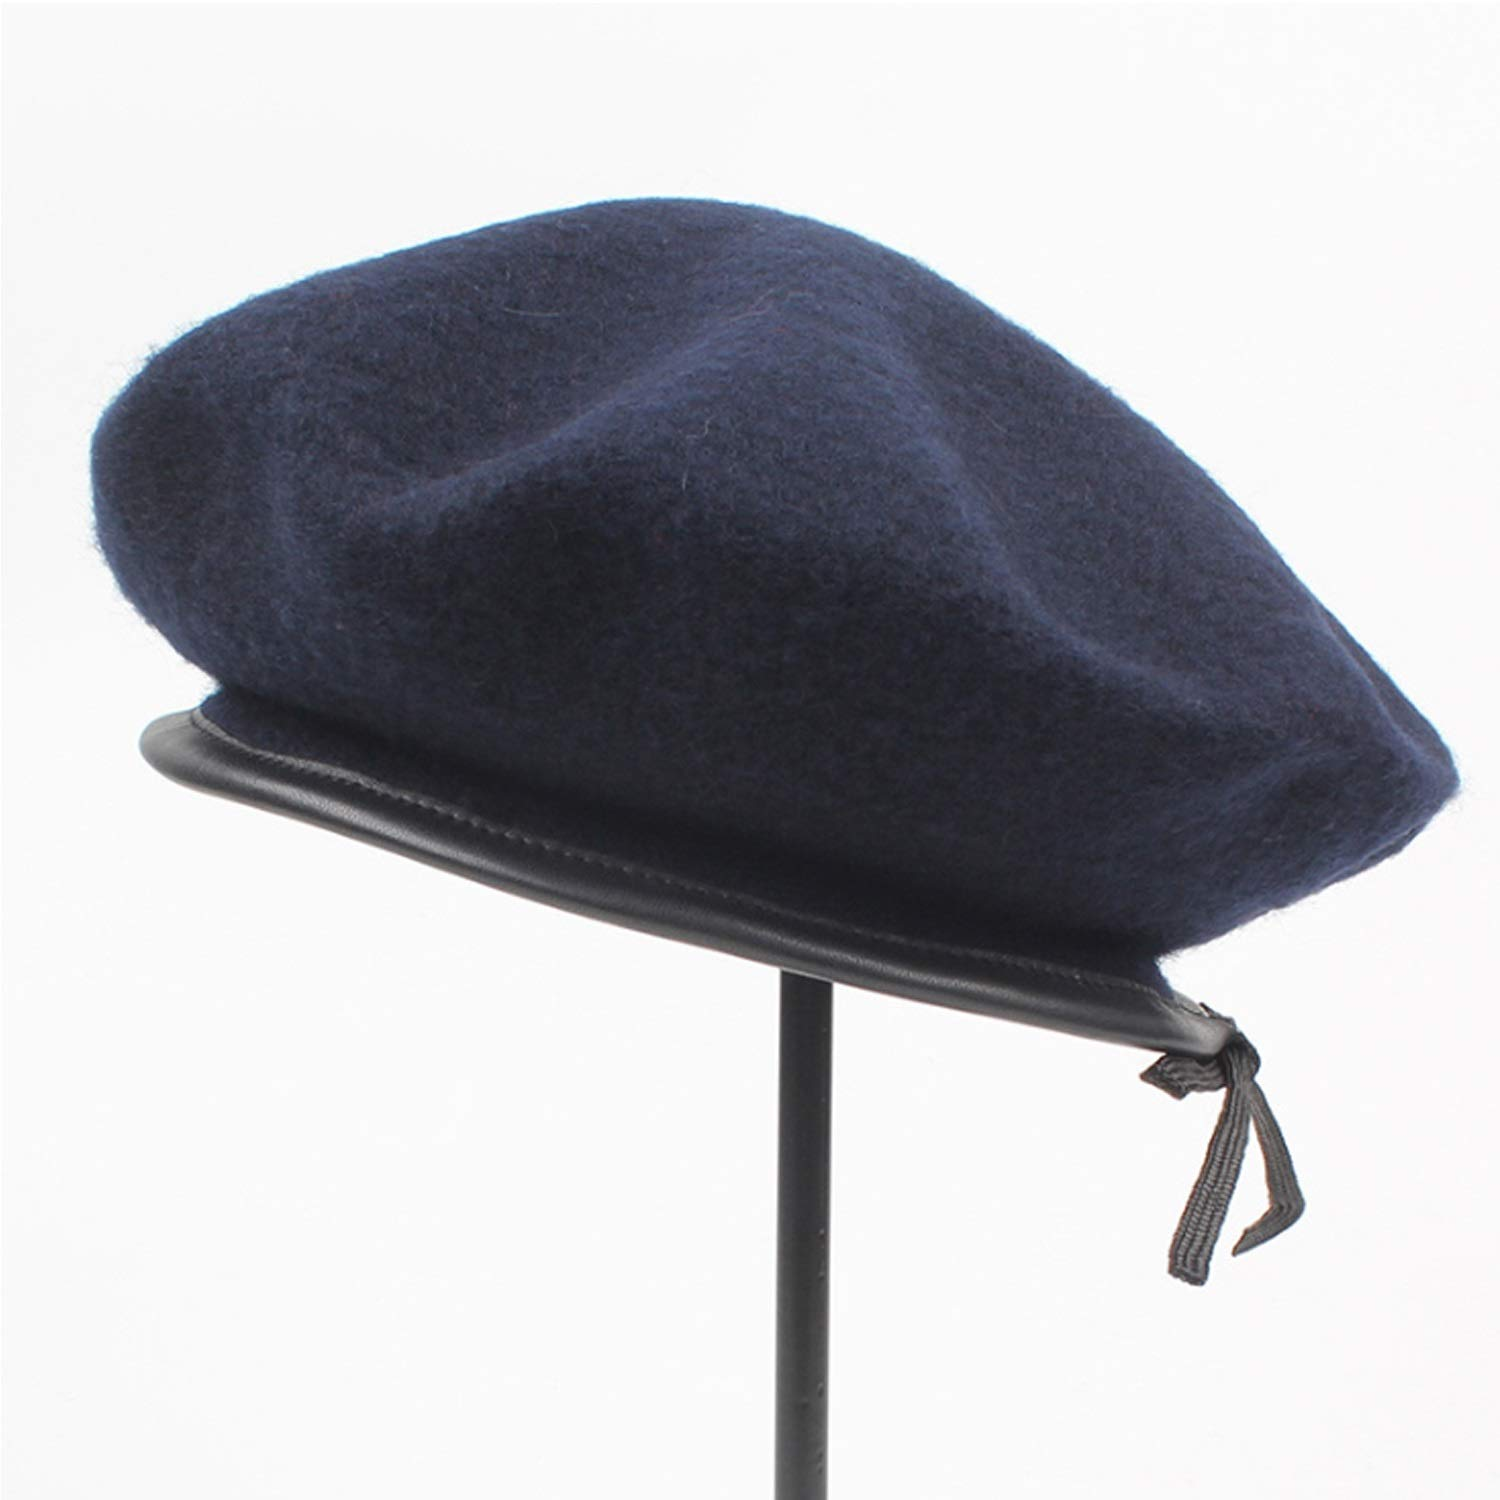 Women Autumn//Winter Japanese Fashion Wool Beret Leather End Painter Hat,Leisure Fashion Cap. Happy-L Hat Color : Navy, Size : M